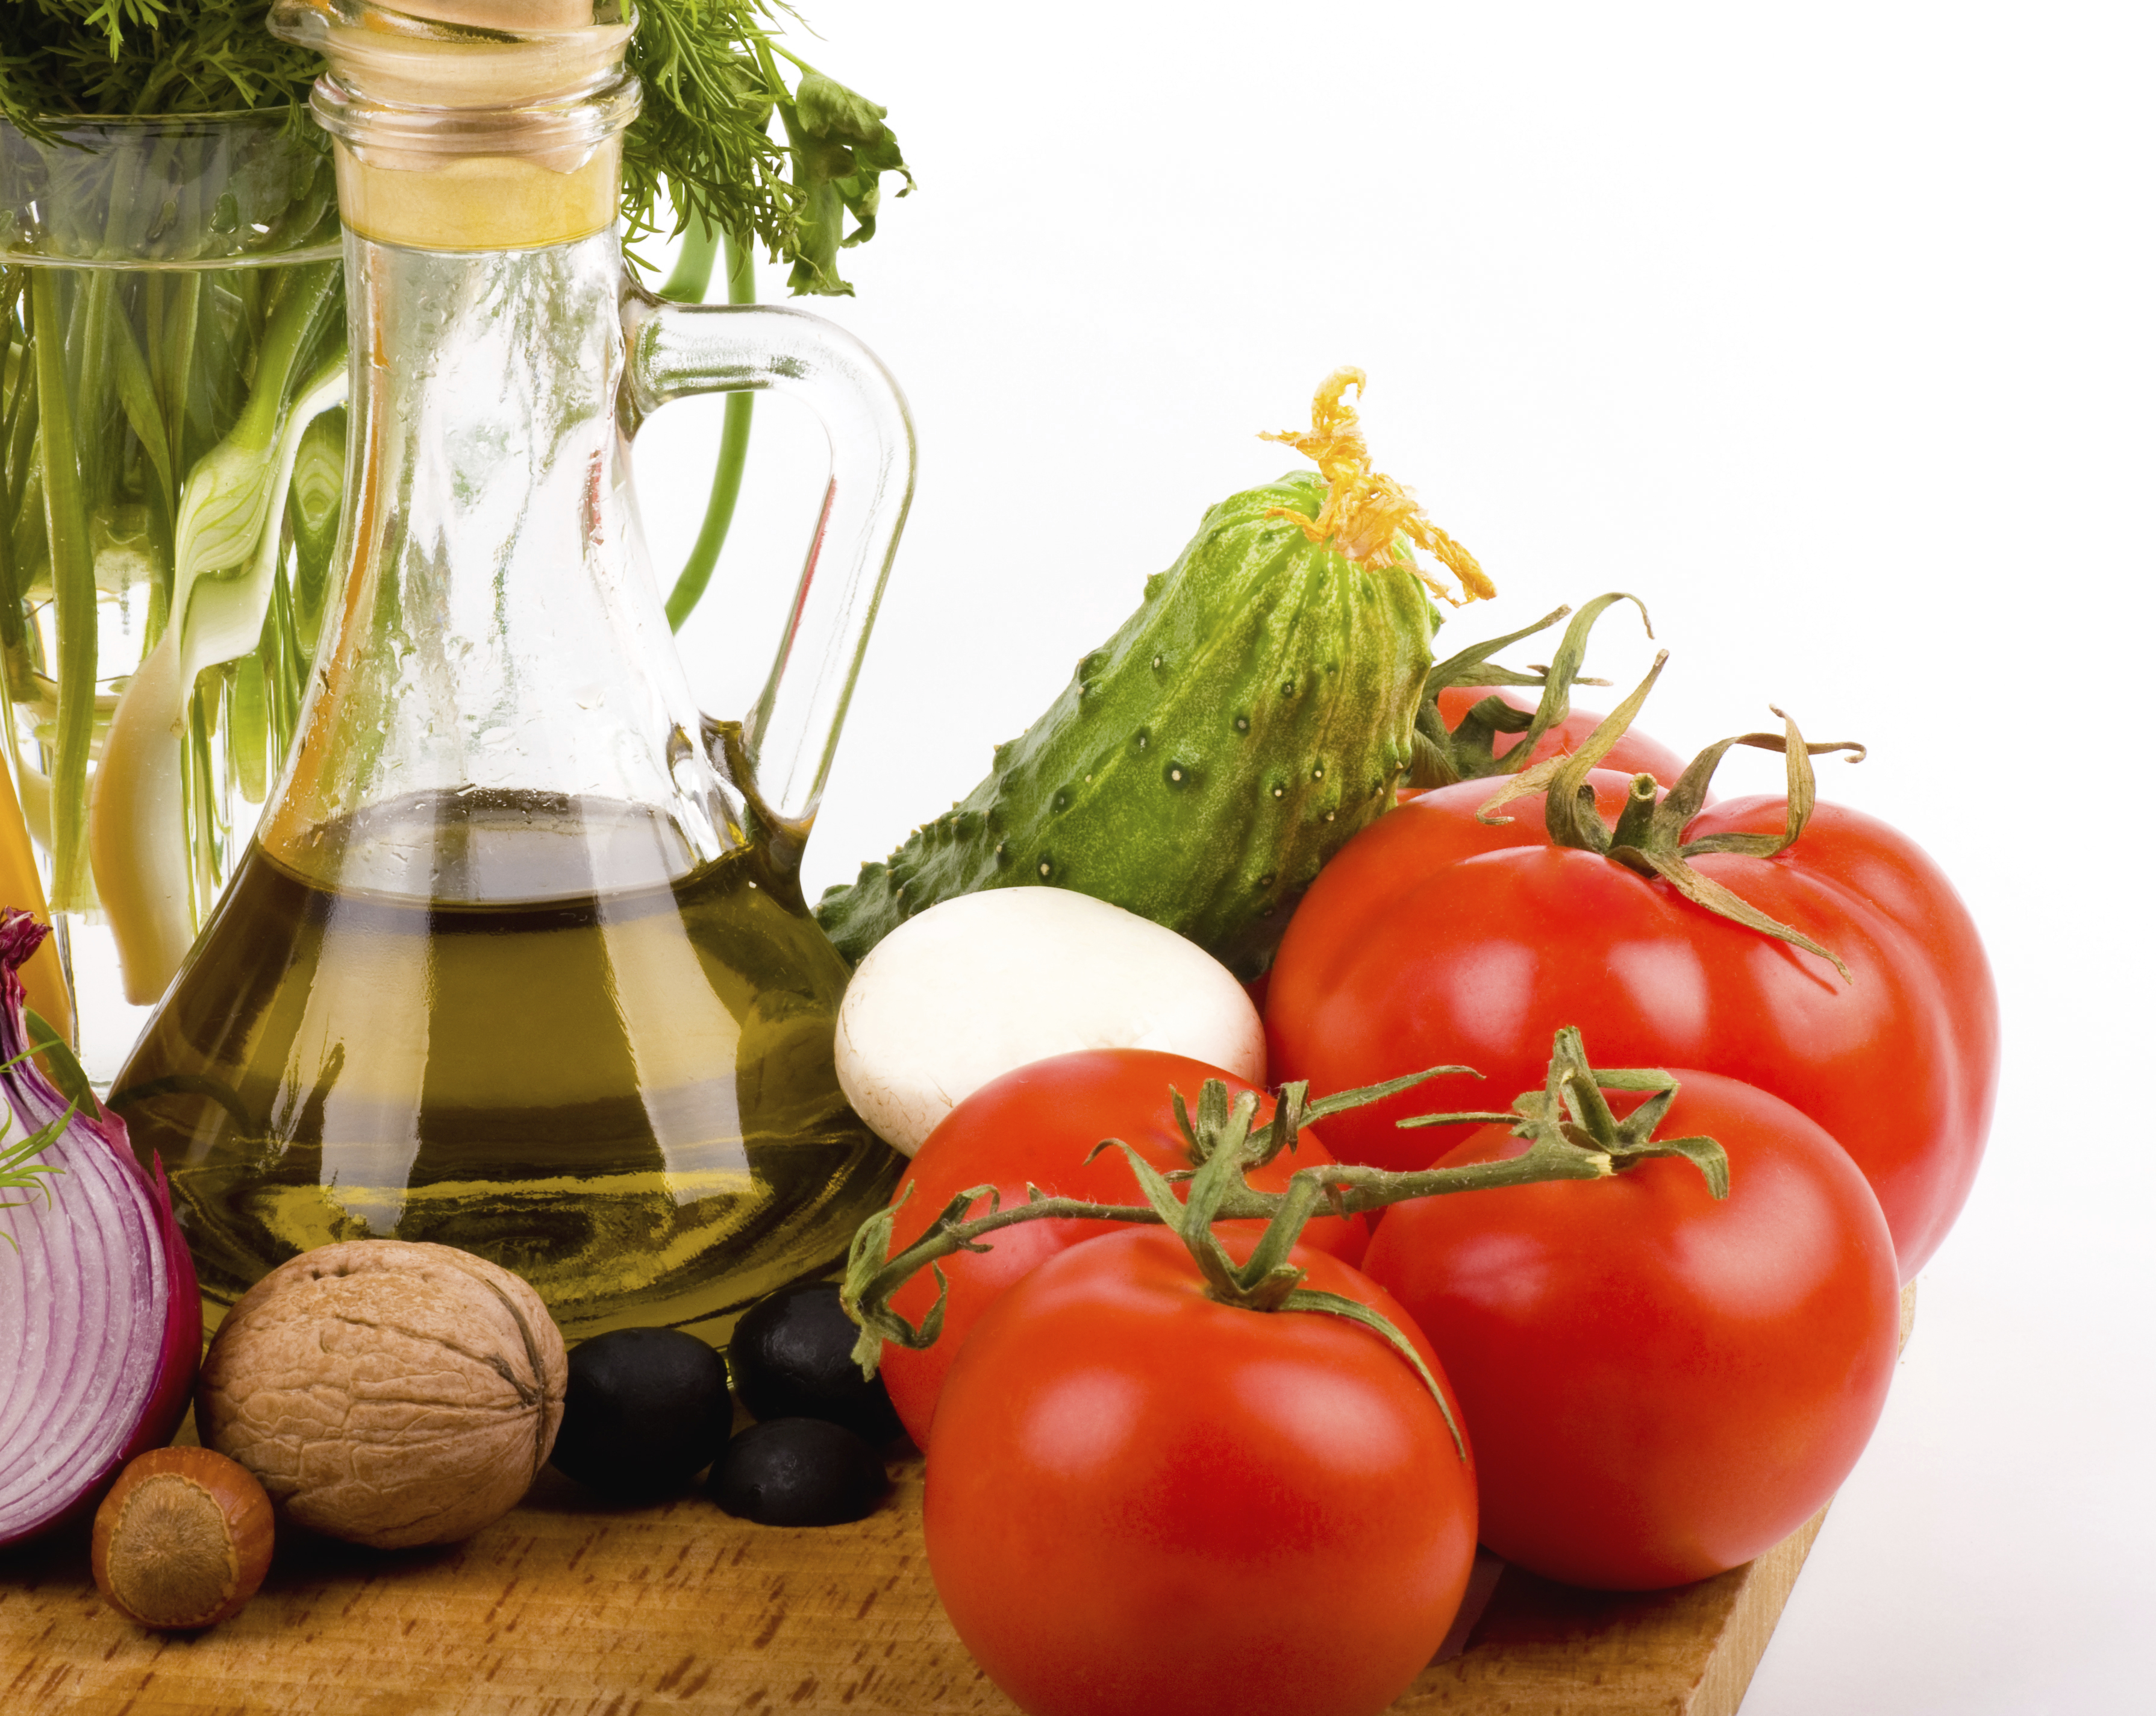 Mediterranean diet may help counteract age-related ...